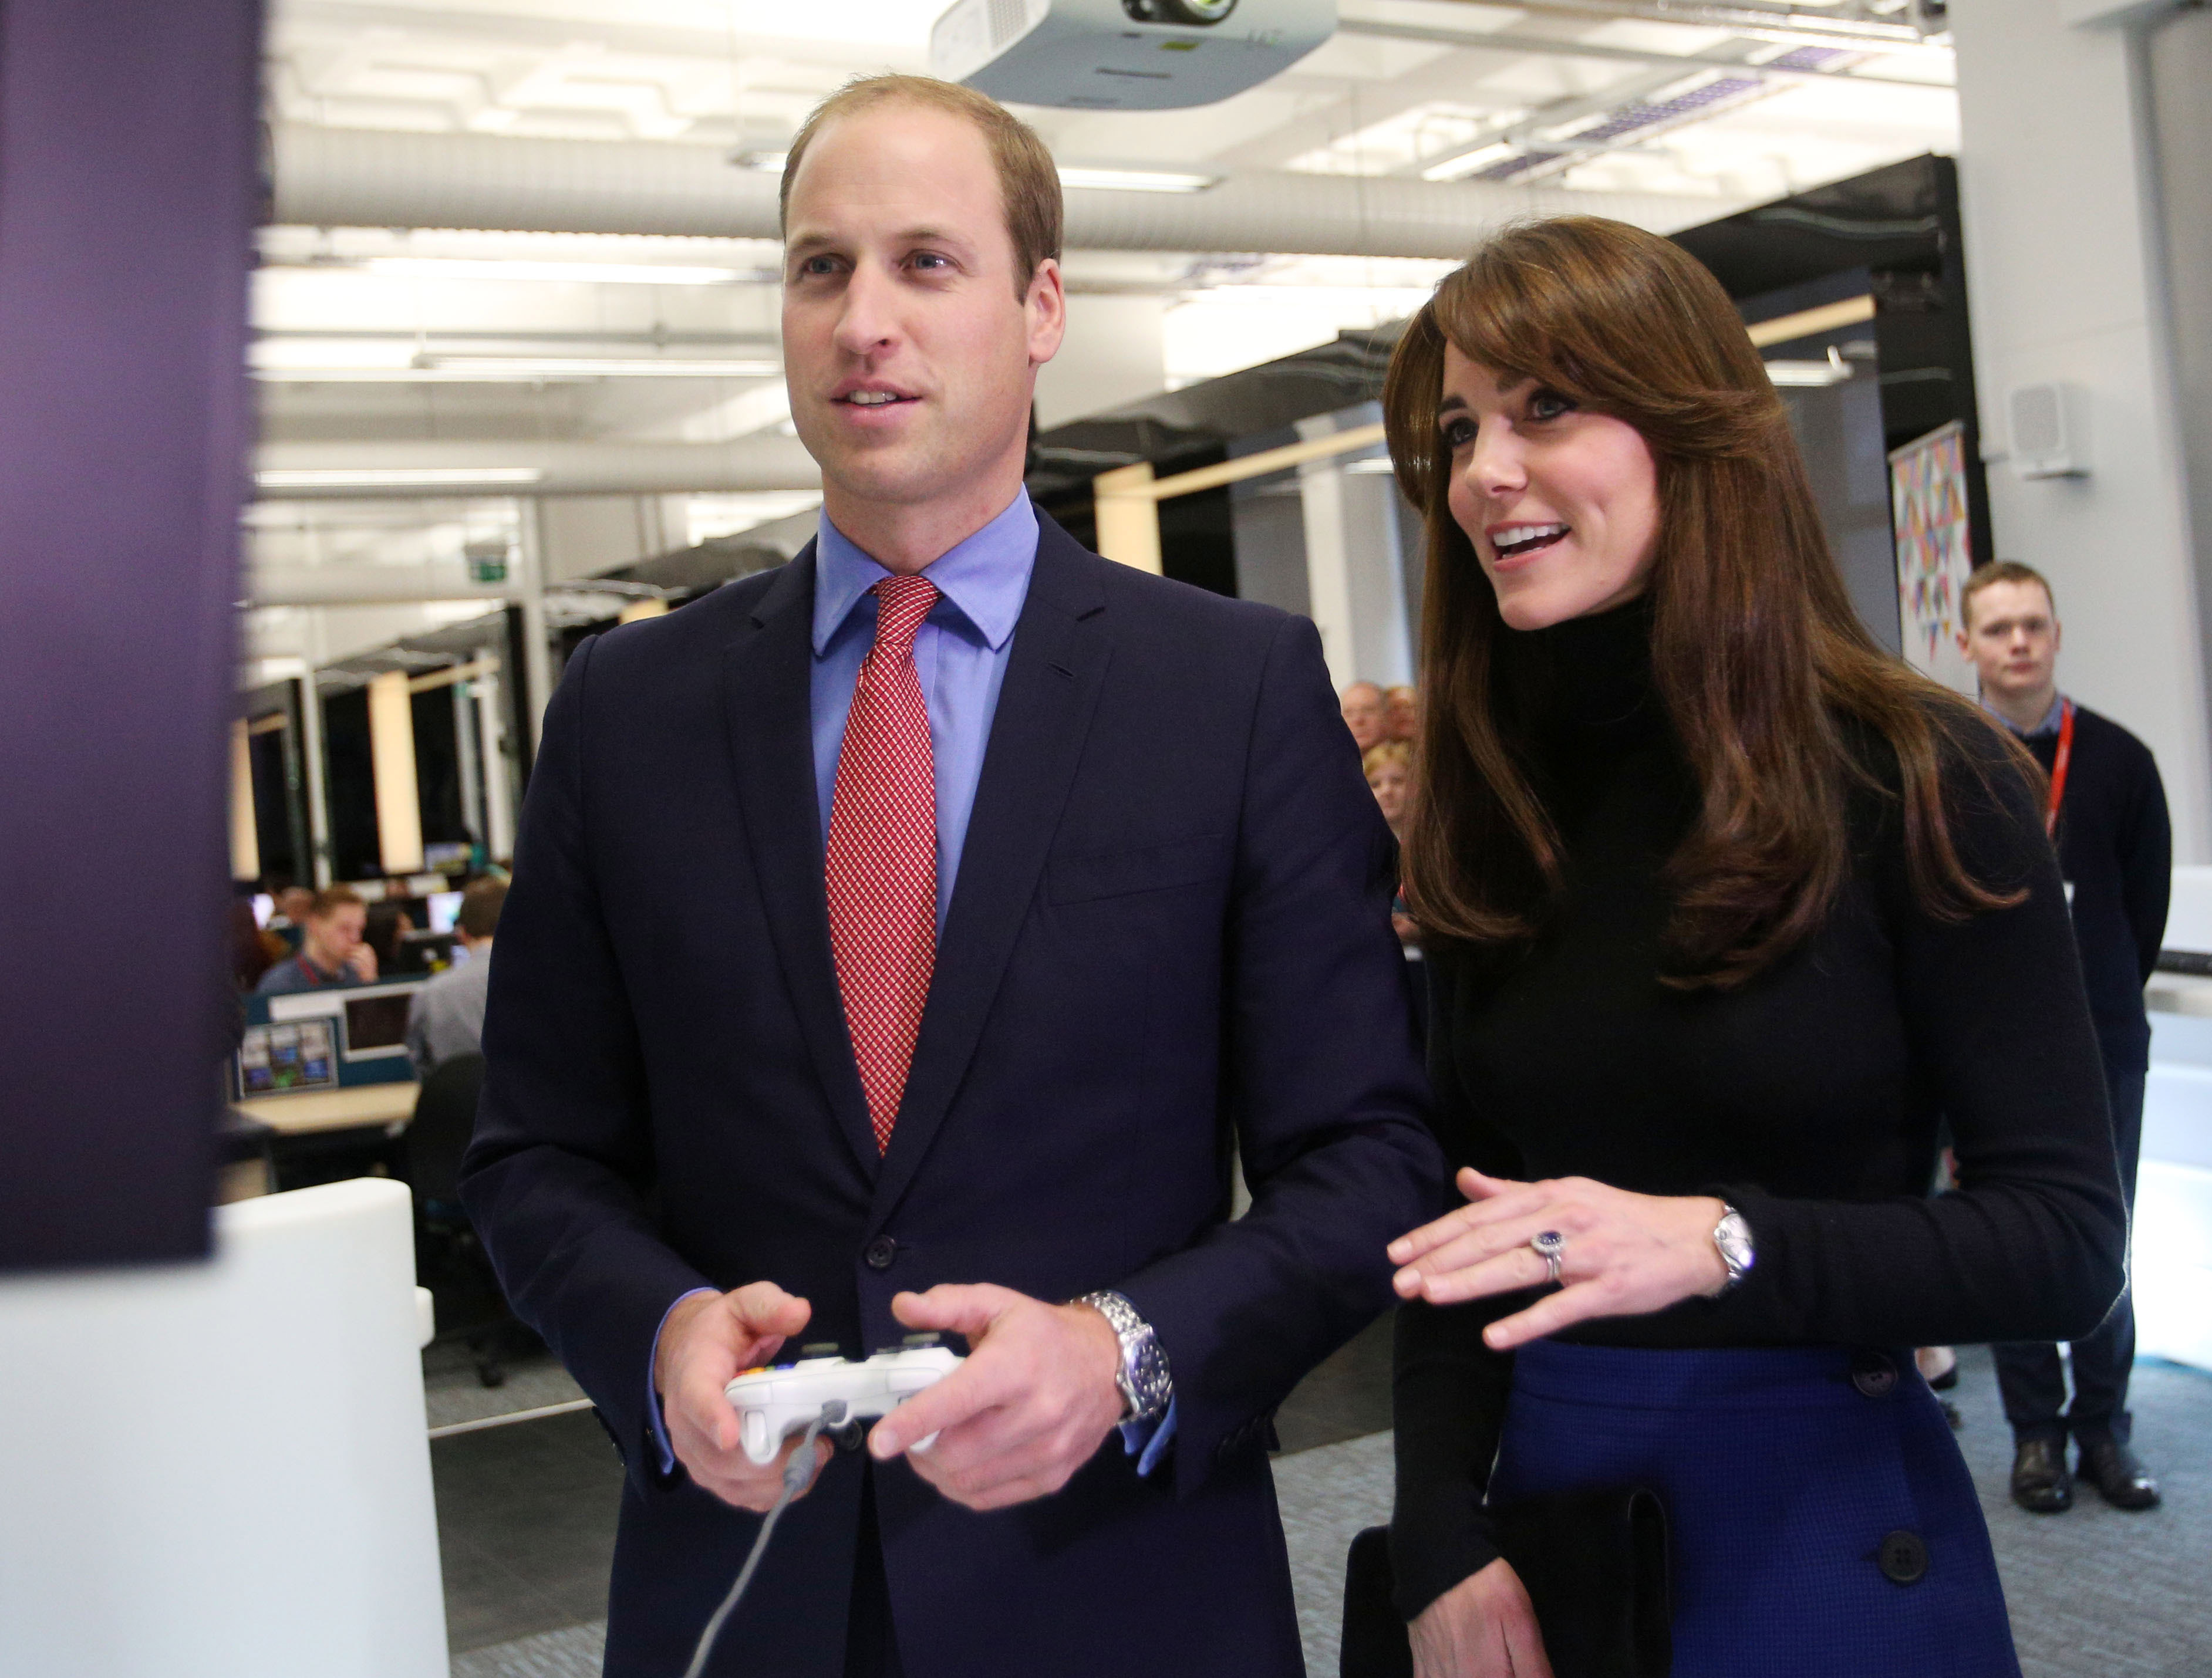 Prince William is heading up an anti cyber bullying campaign